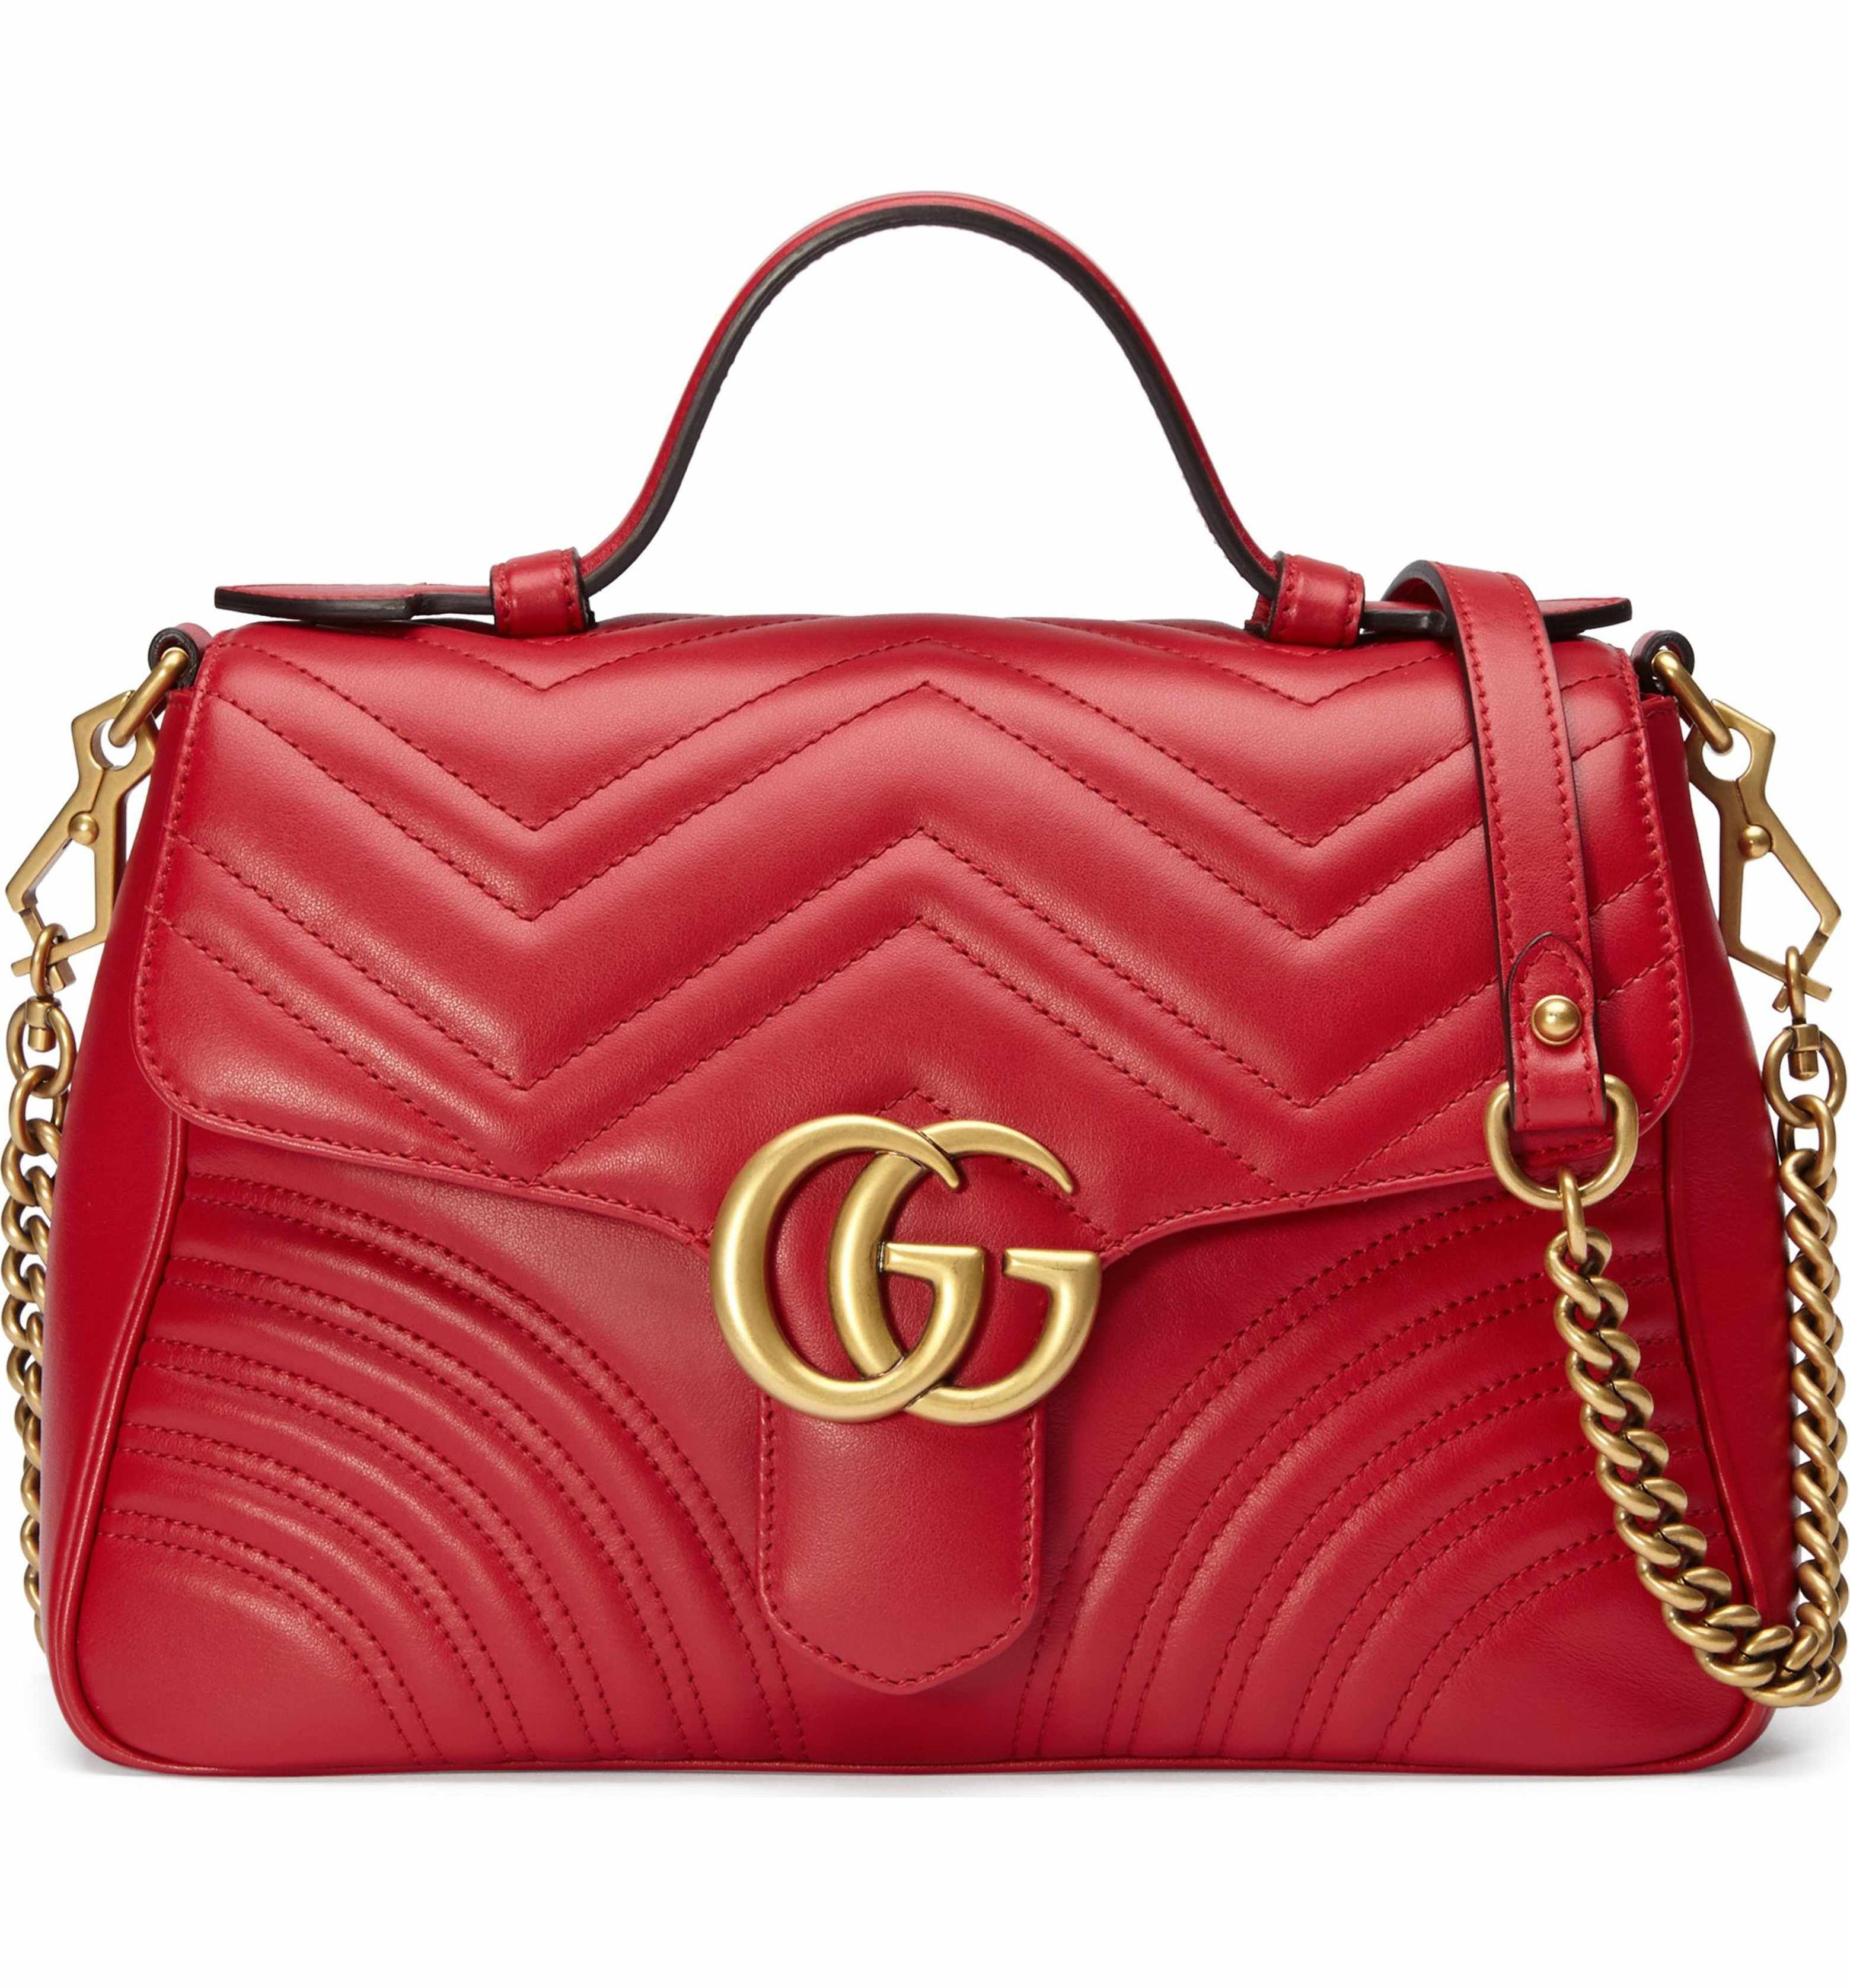 0d91f2afc0a Main Image - Gucci Small GG Marmont 2.0 Matelassé Leather Top Handle ...